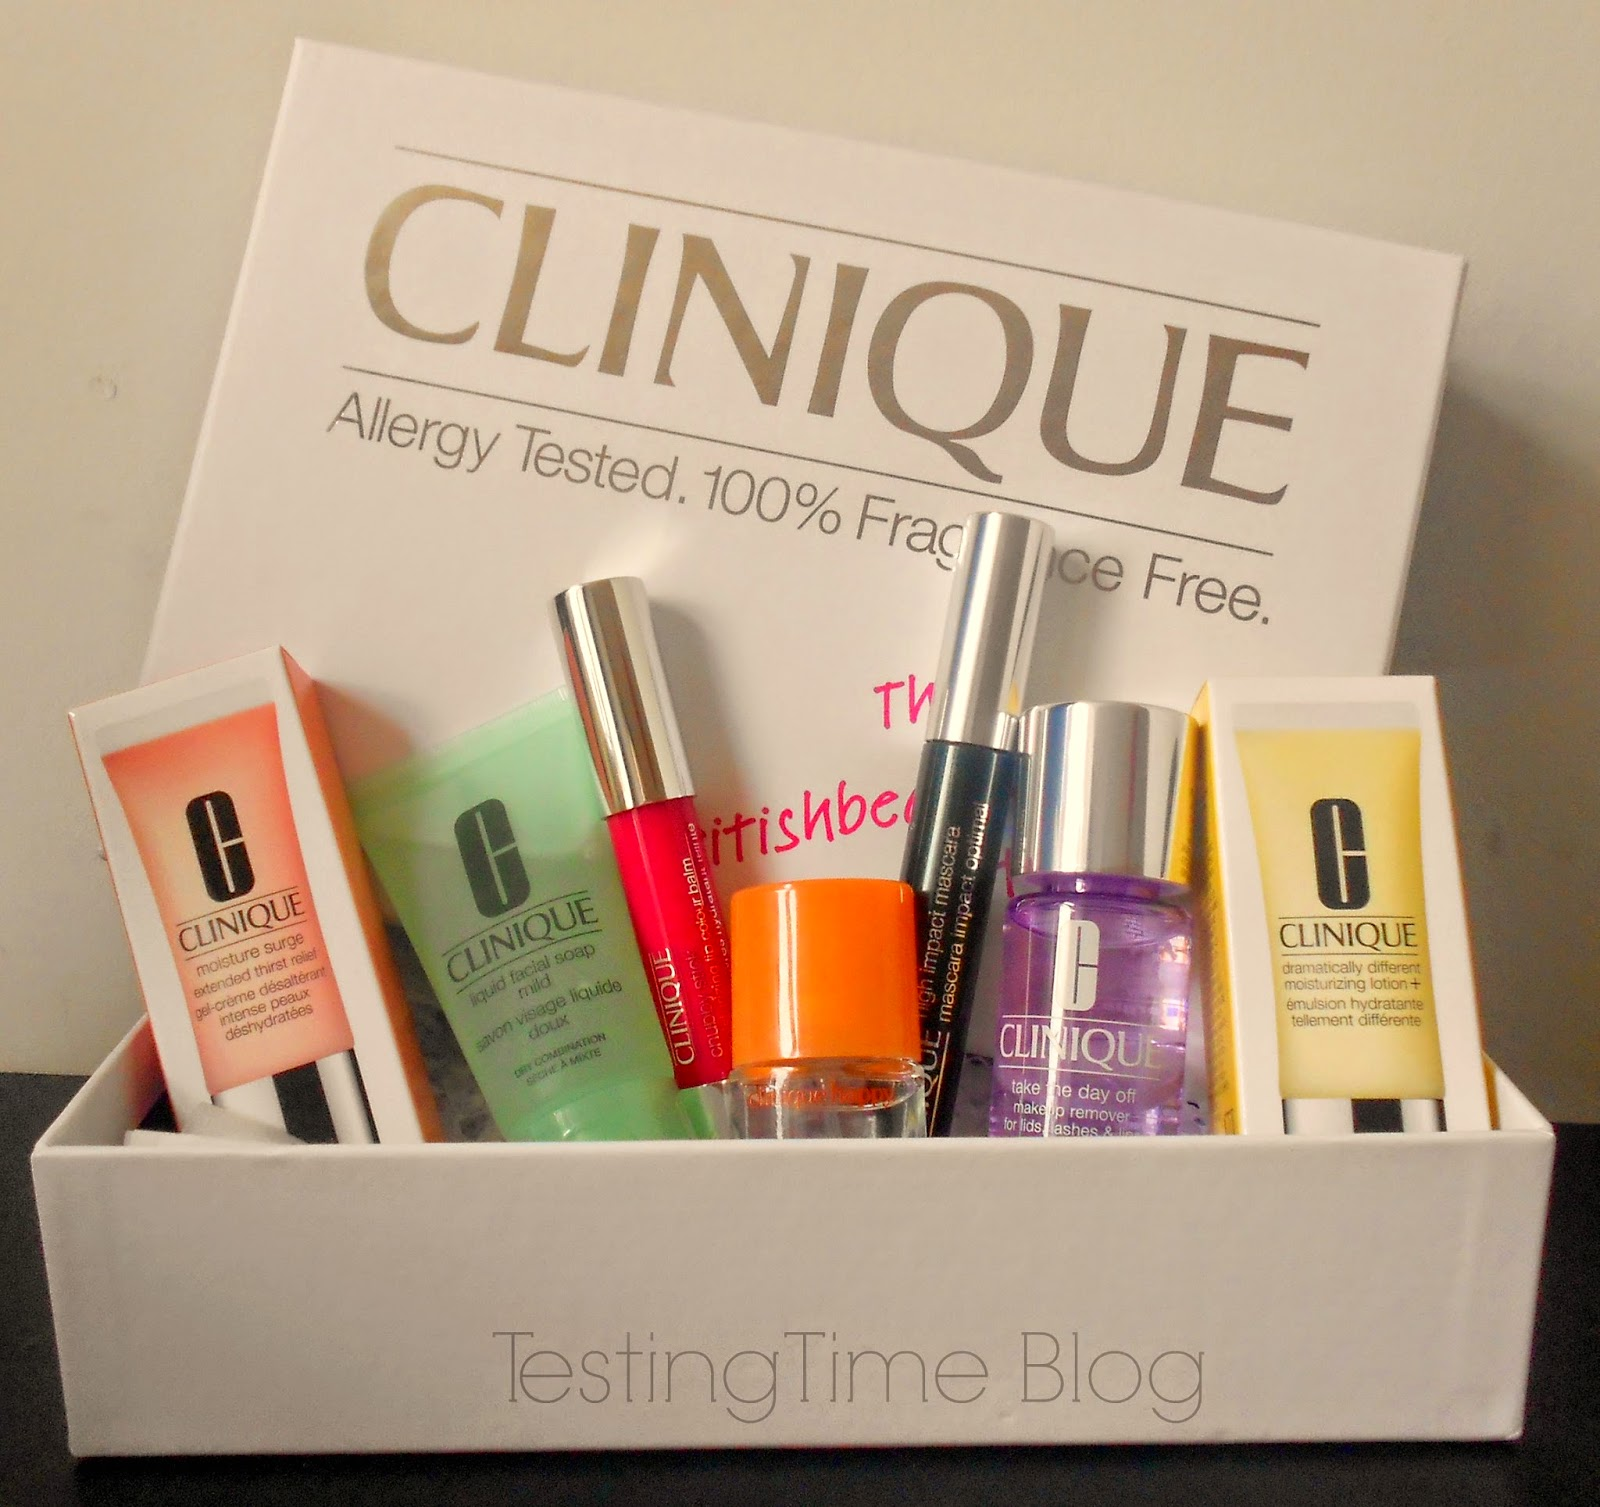 Latest In Beauty British Beauty Blogger Box - Clinique Edit - Testing Time Blog